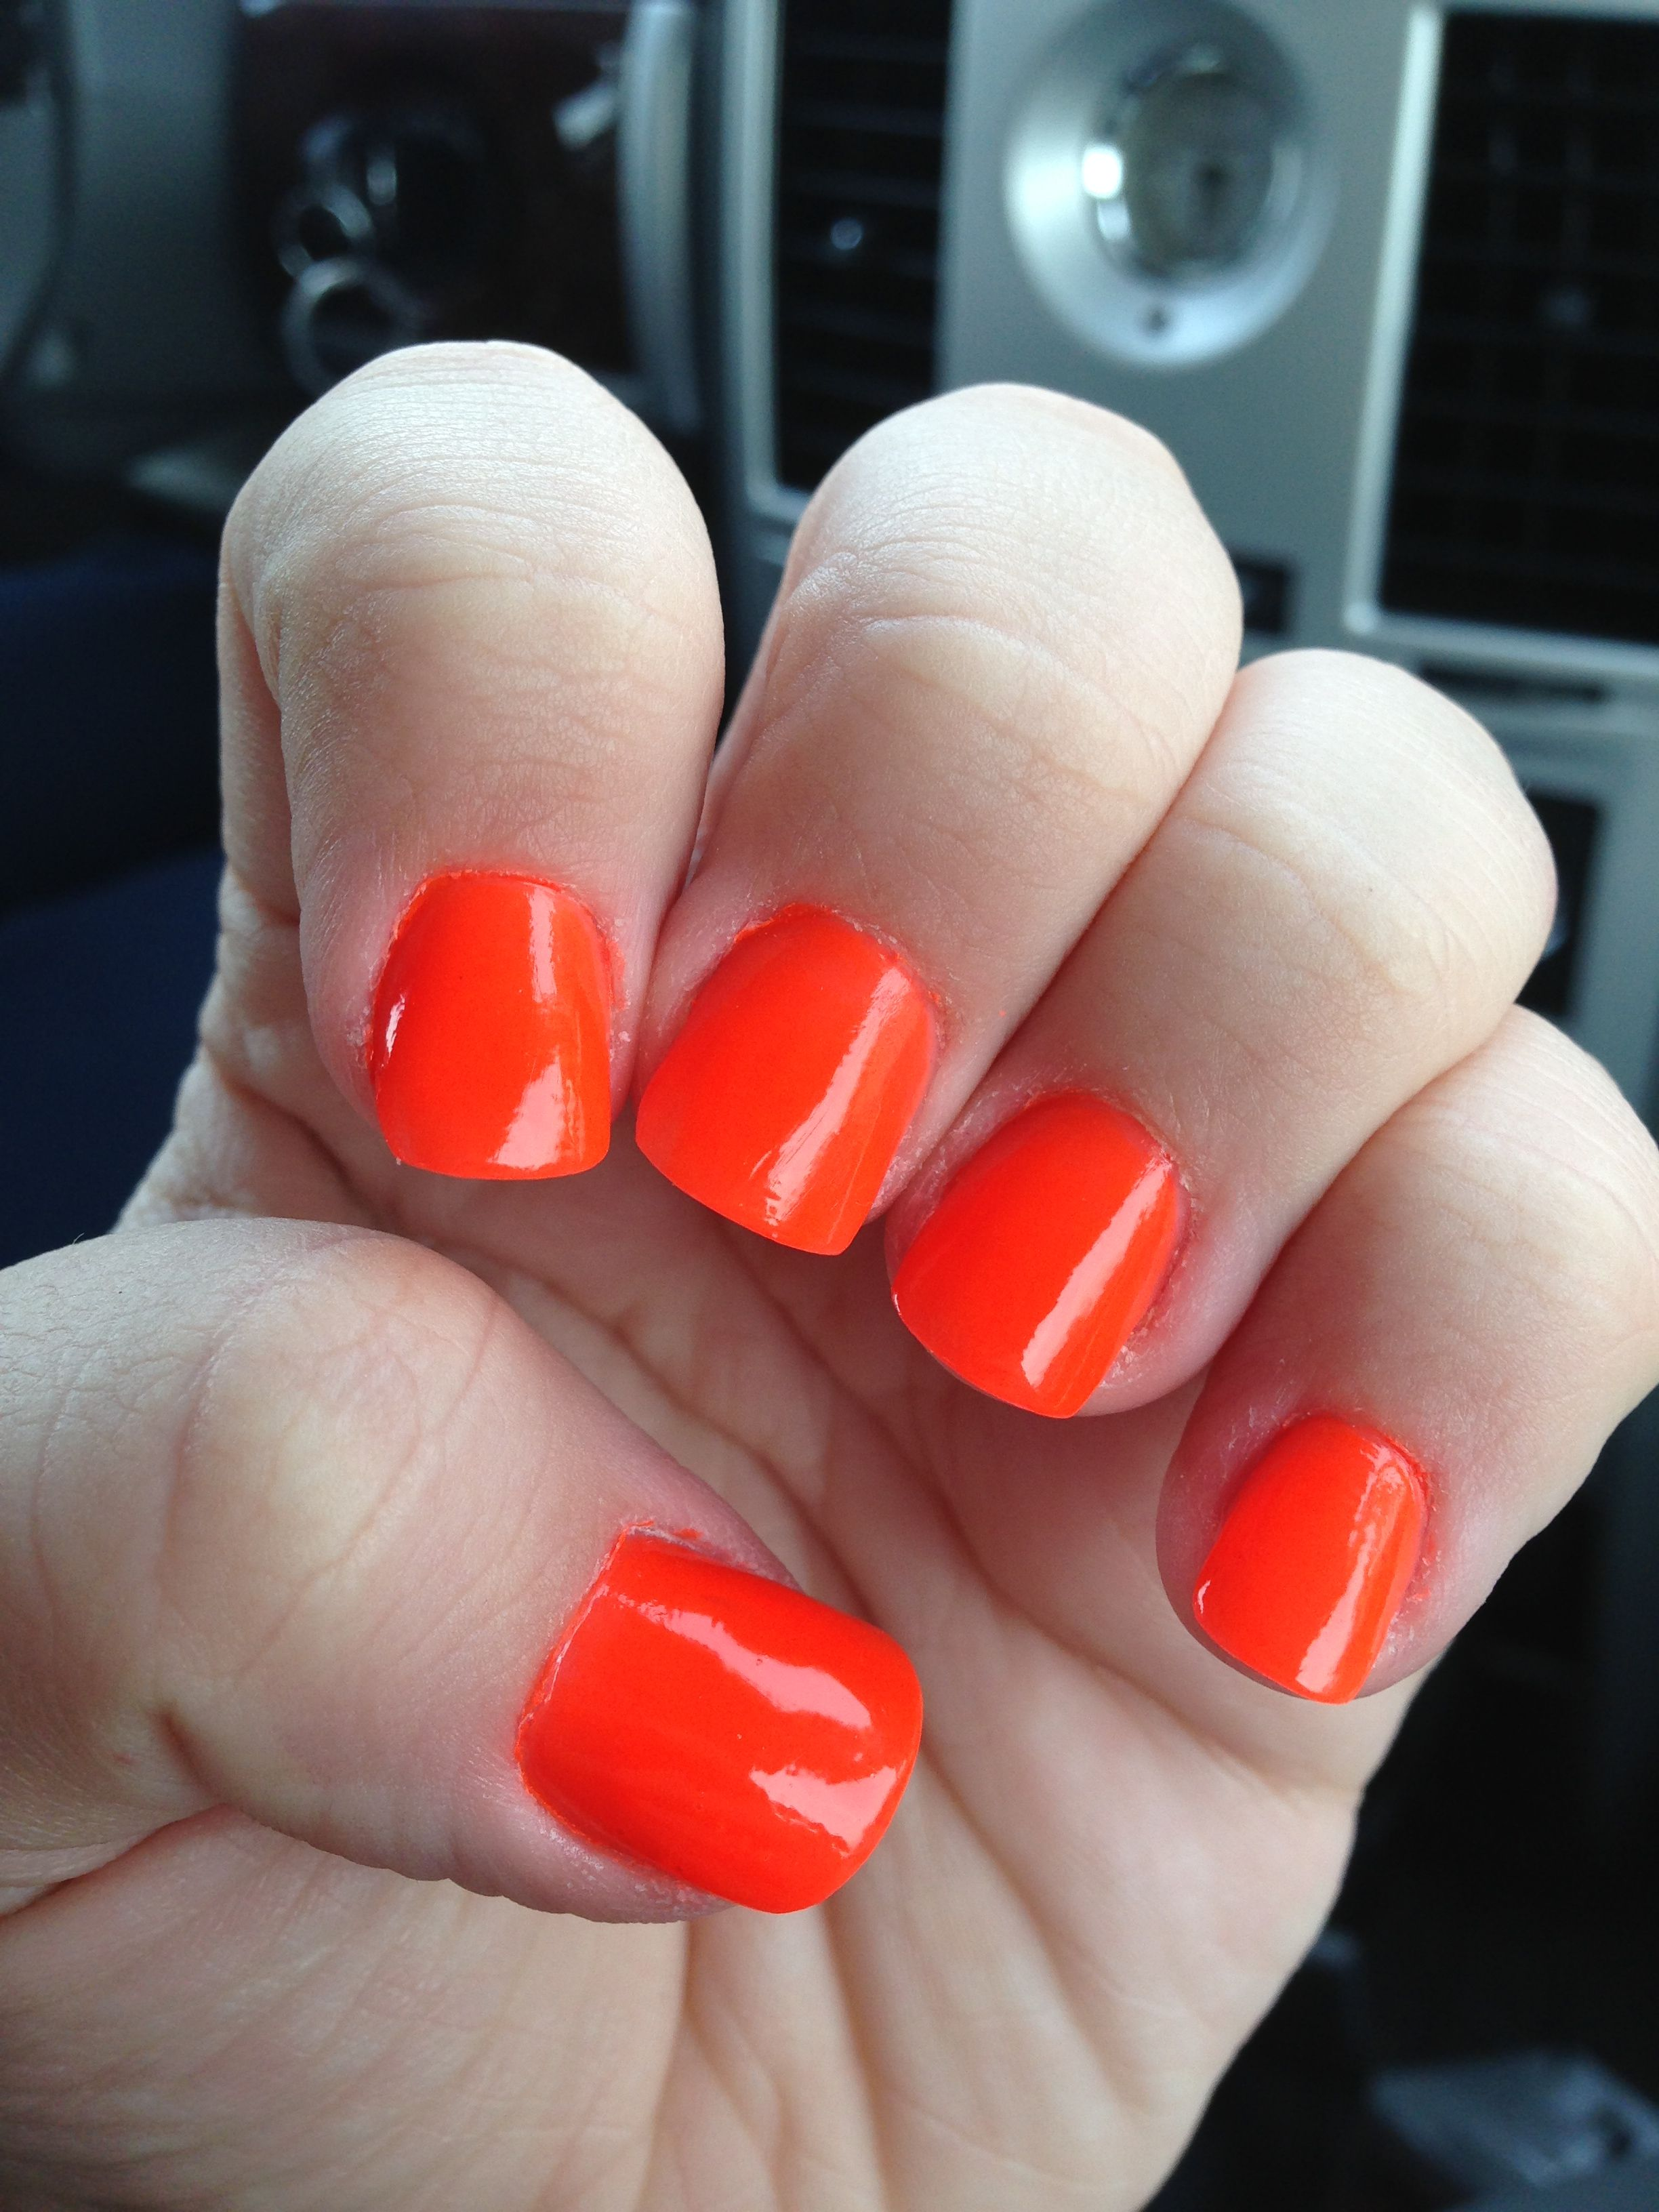 Orange nails loveeeeee them!!